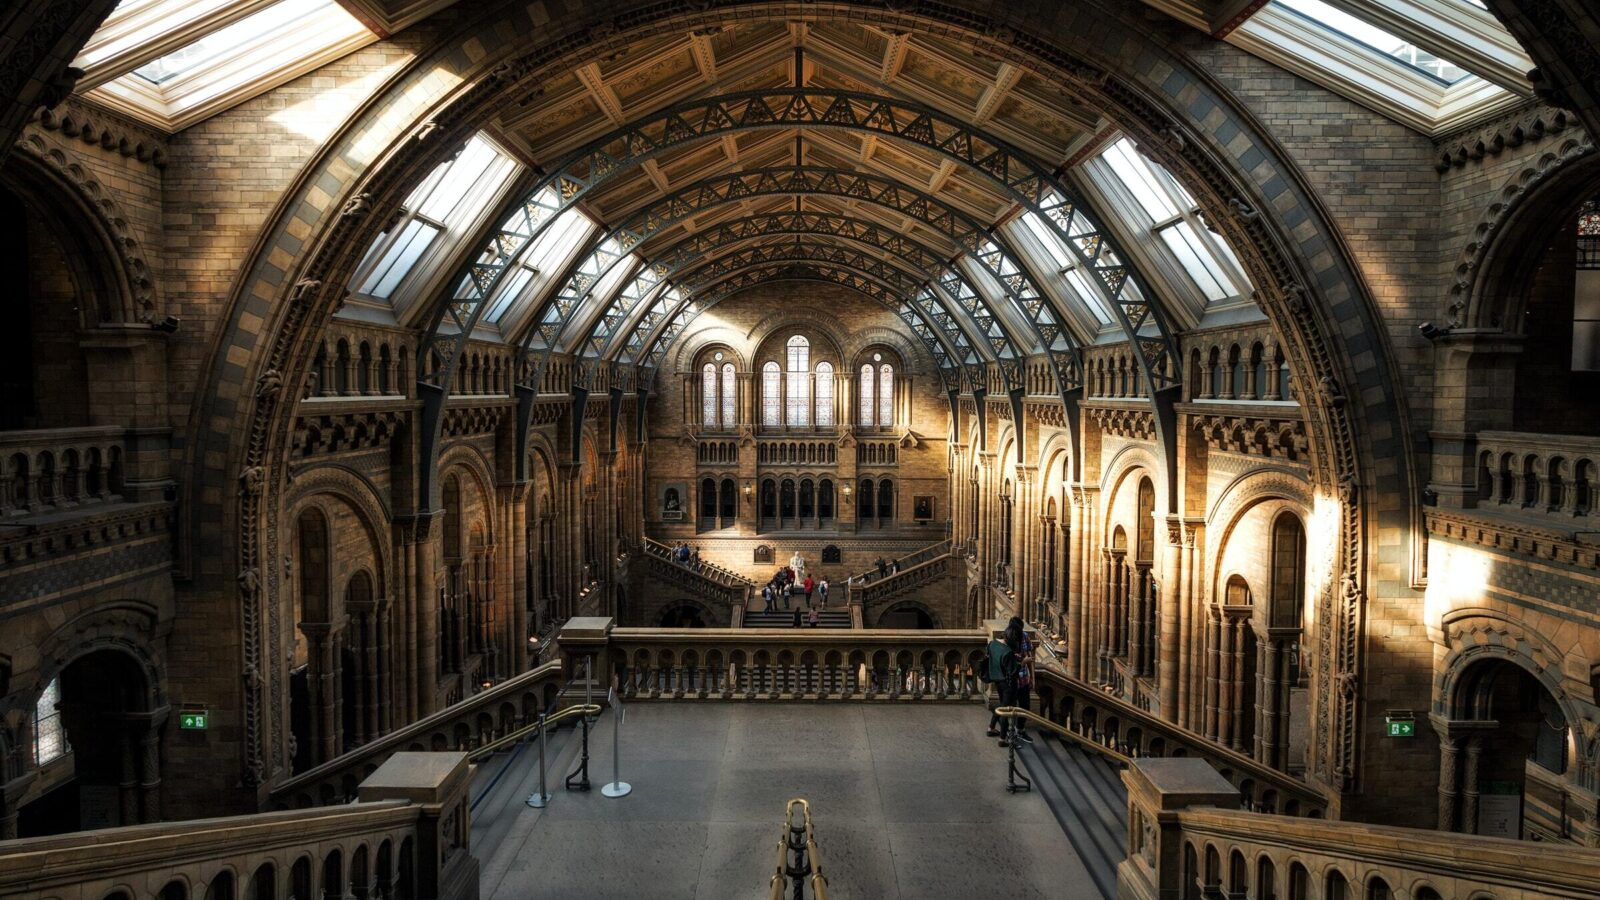 Photograph of the main hall at the Natural History Museum